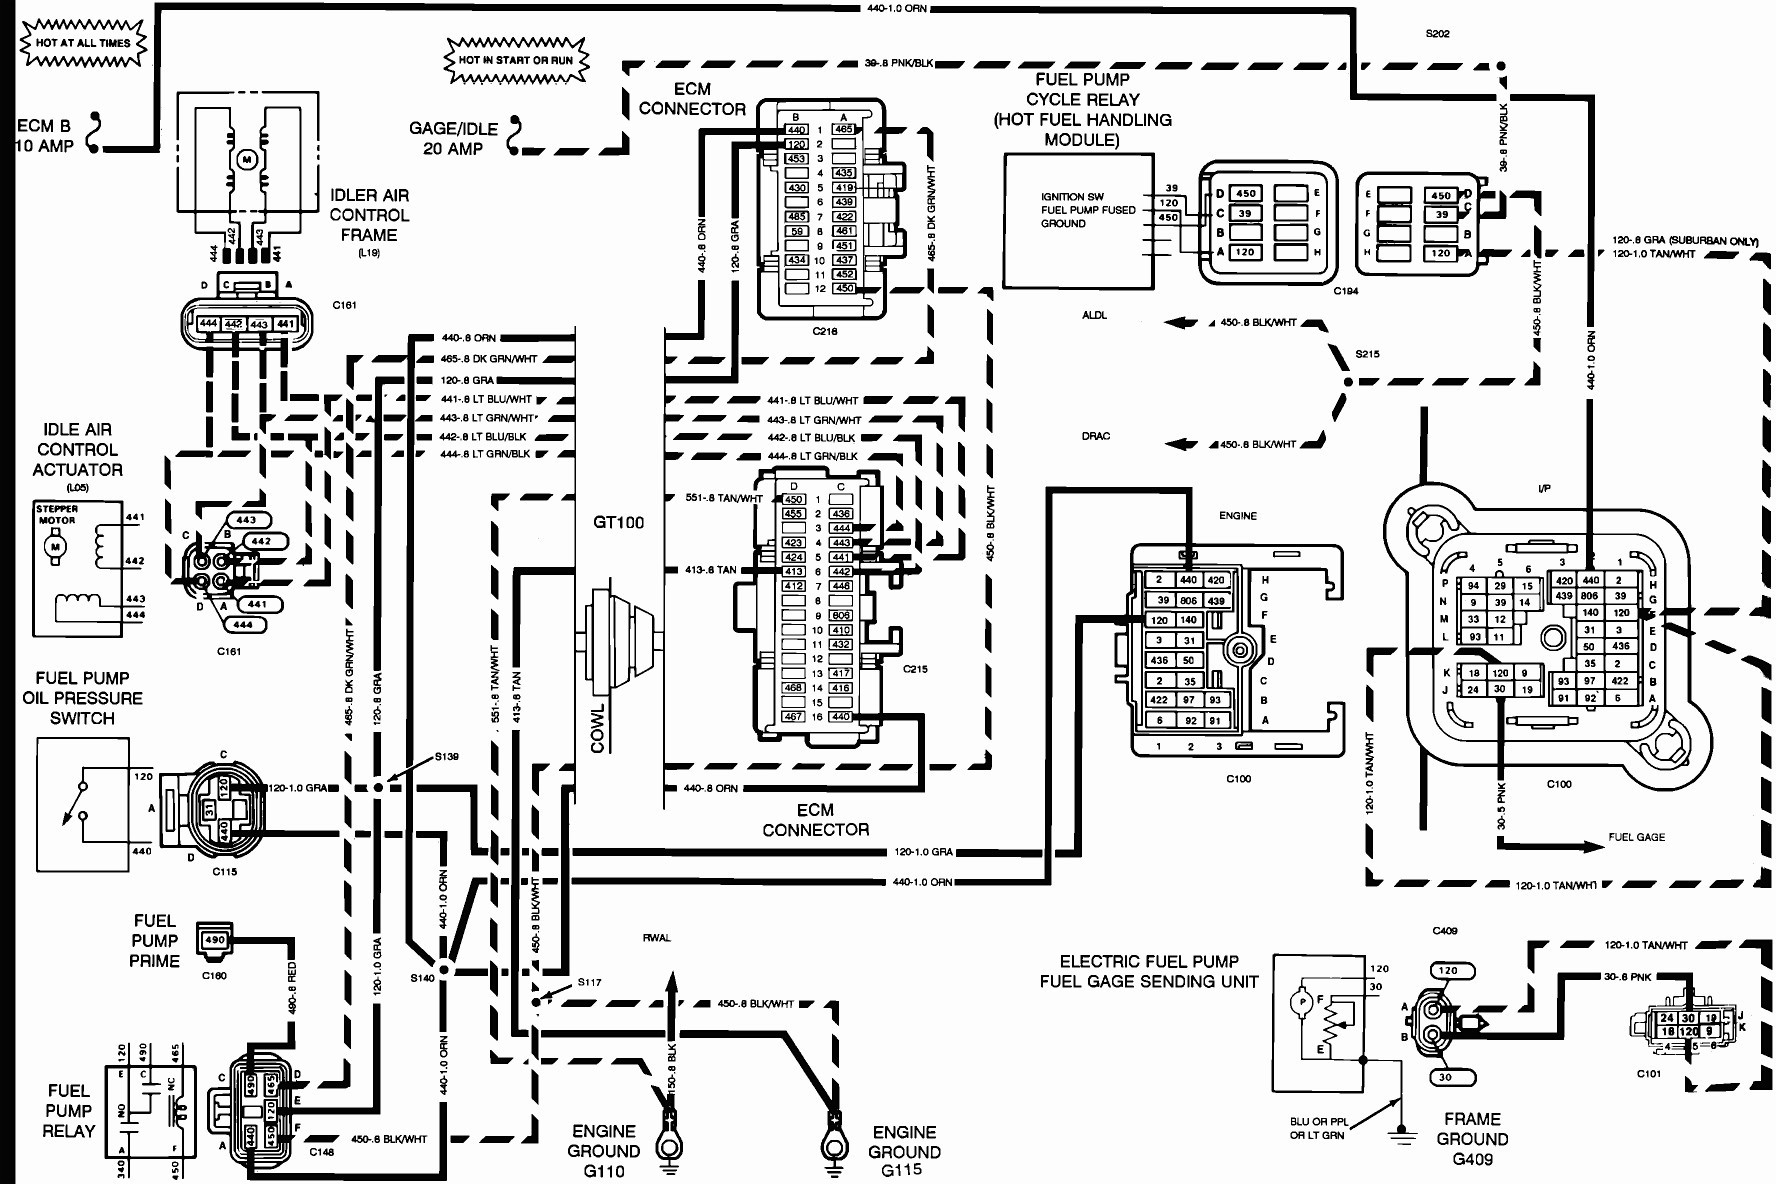 1985 dodge rv wiring diagram